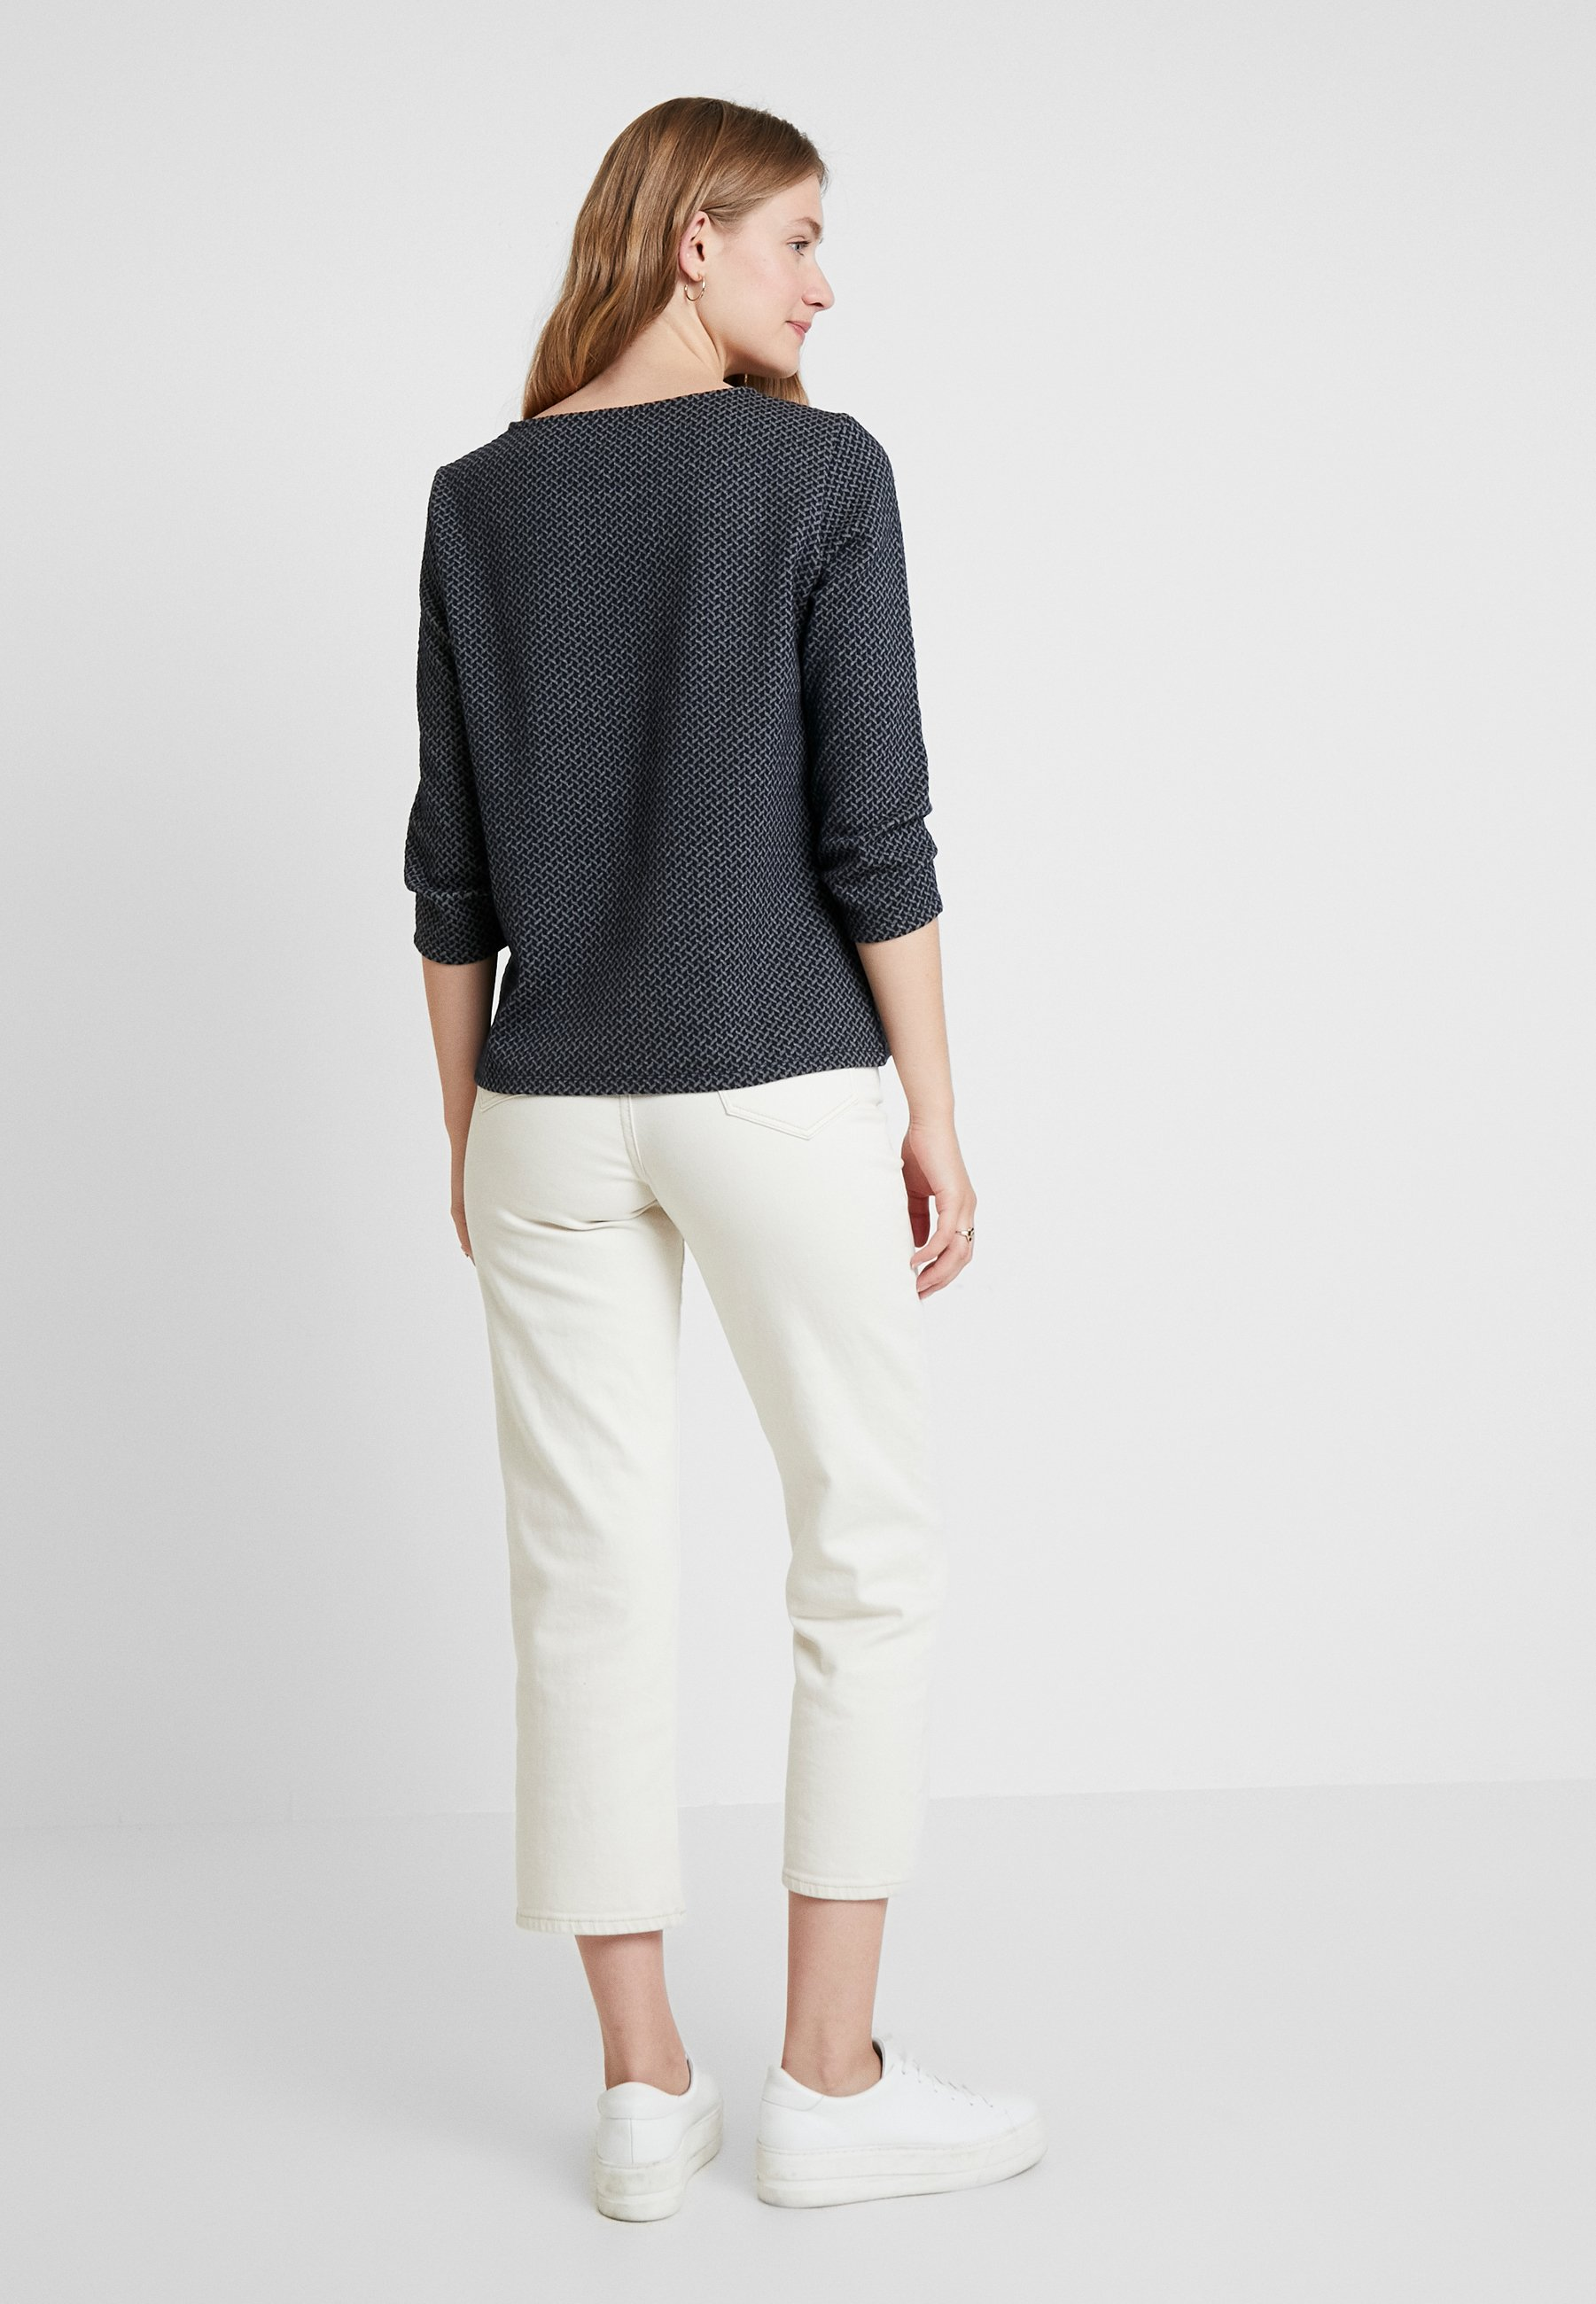 TOM TAILOR WITH ZIP DETAILS - T-shirt à manches longues navy/grey